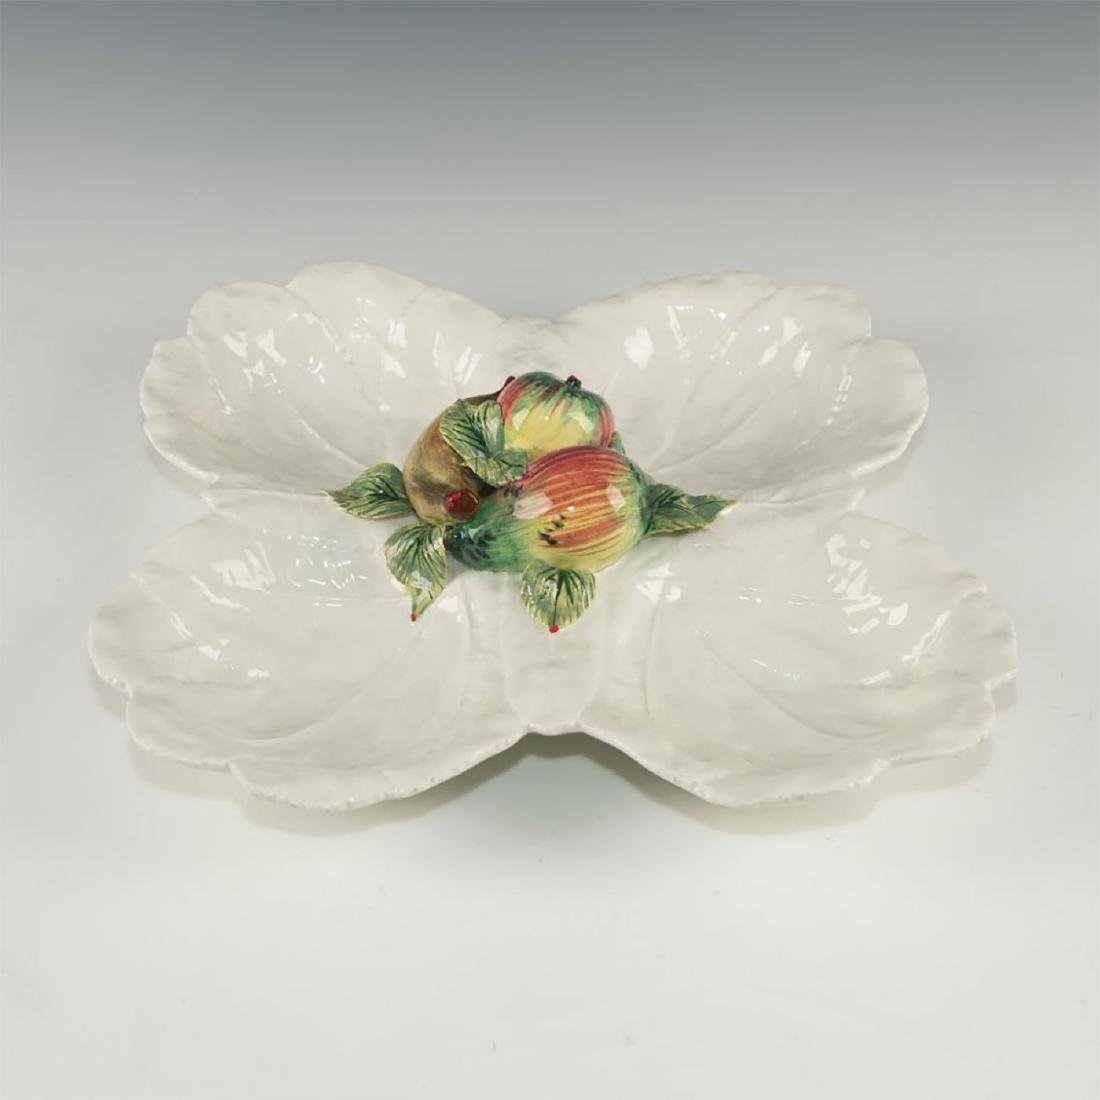 PORCELAIN SERVING DISH WITH CENTRAL FRUIT DECORATION